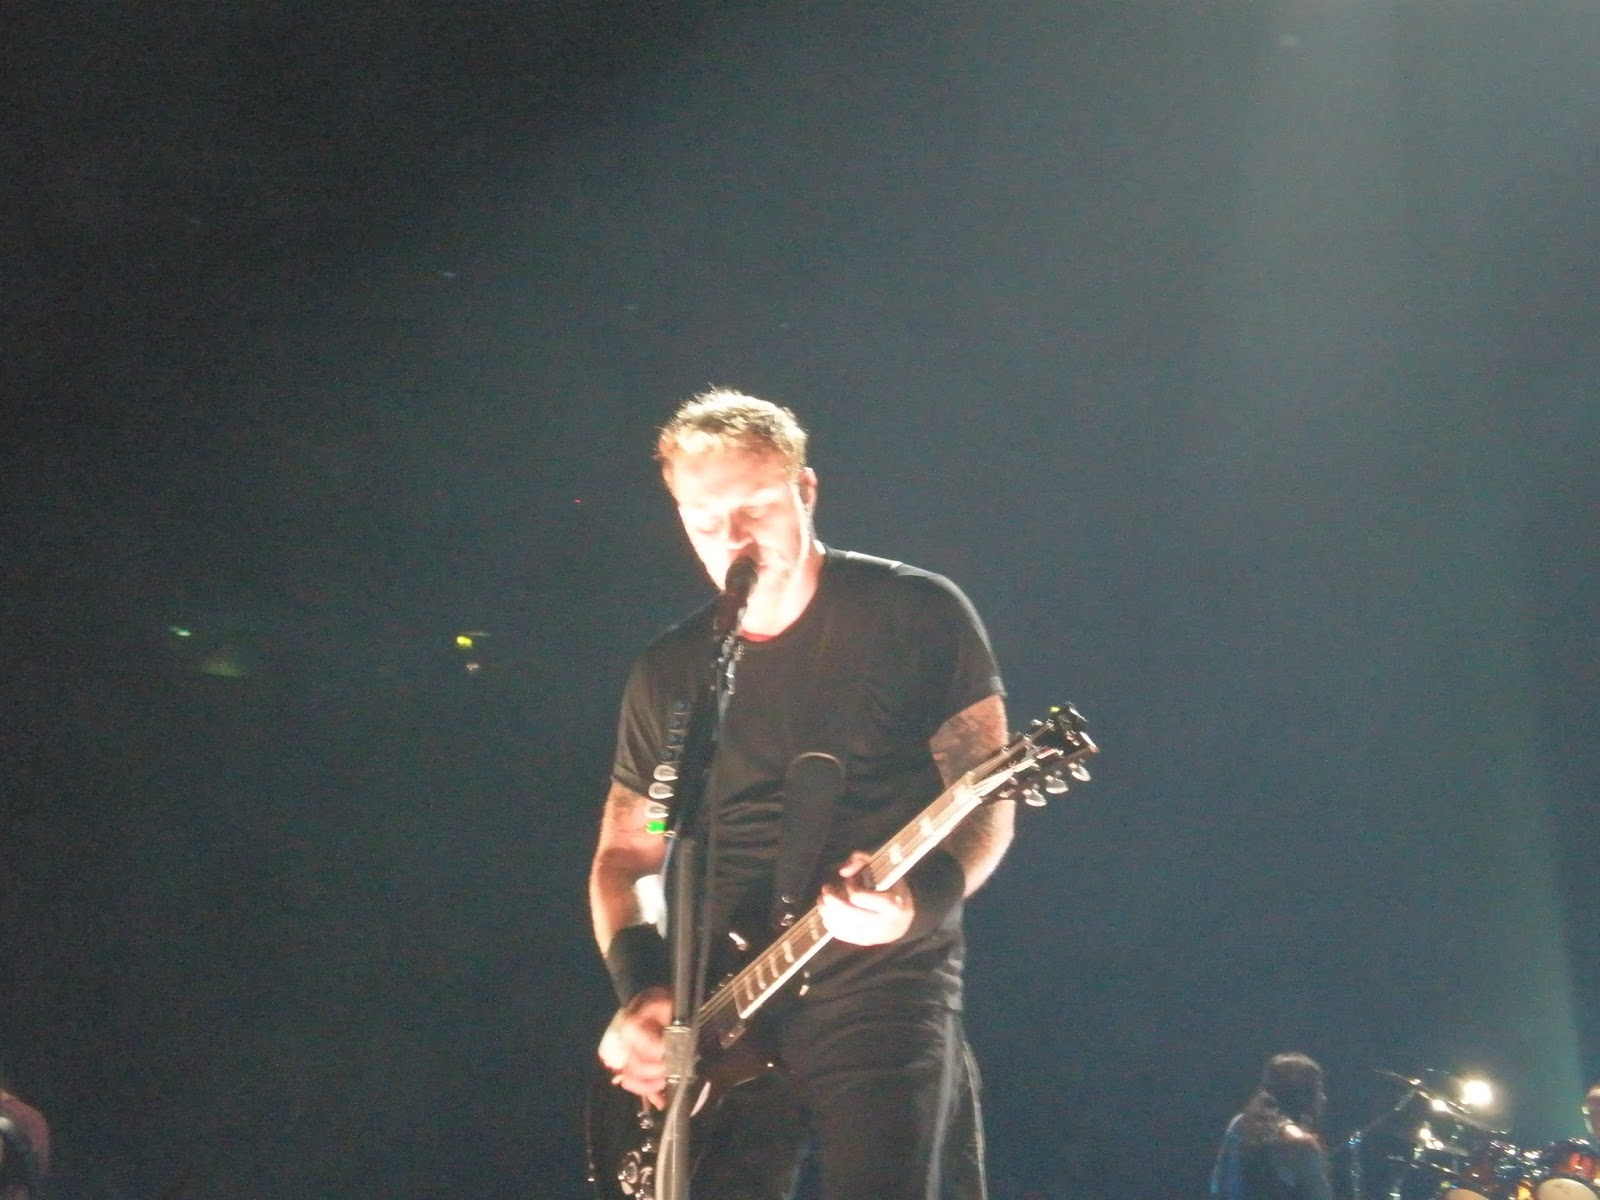 Manchester, men, phones4u, arena, London, 02, dome, greenwich, millennium, Leeds festival, download, glastonbury, sonisphere, donnington, castle, farm, metal, heavy, metallica, meet and greet, james hetfield, rob t, lars ulrich, kirk hammet, sonisphere, autograph, signed, meeting, heavy metal, festival, gig, knebworth, rail